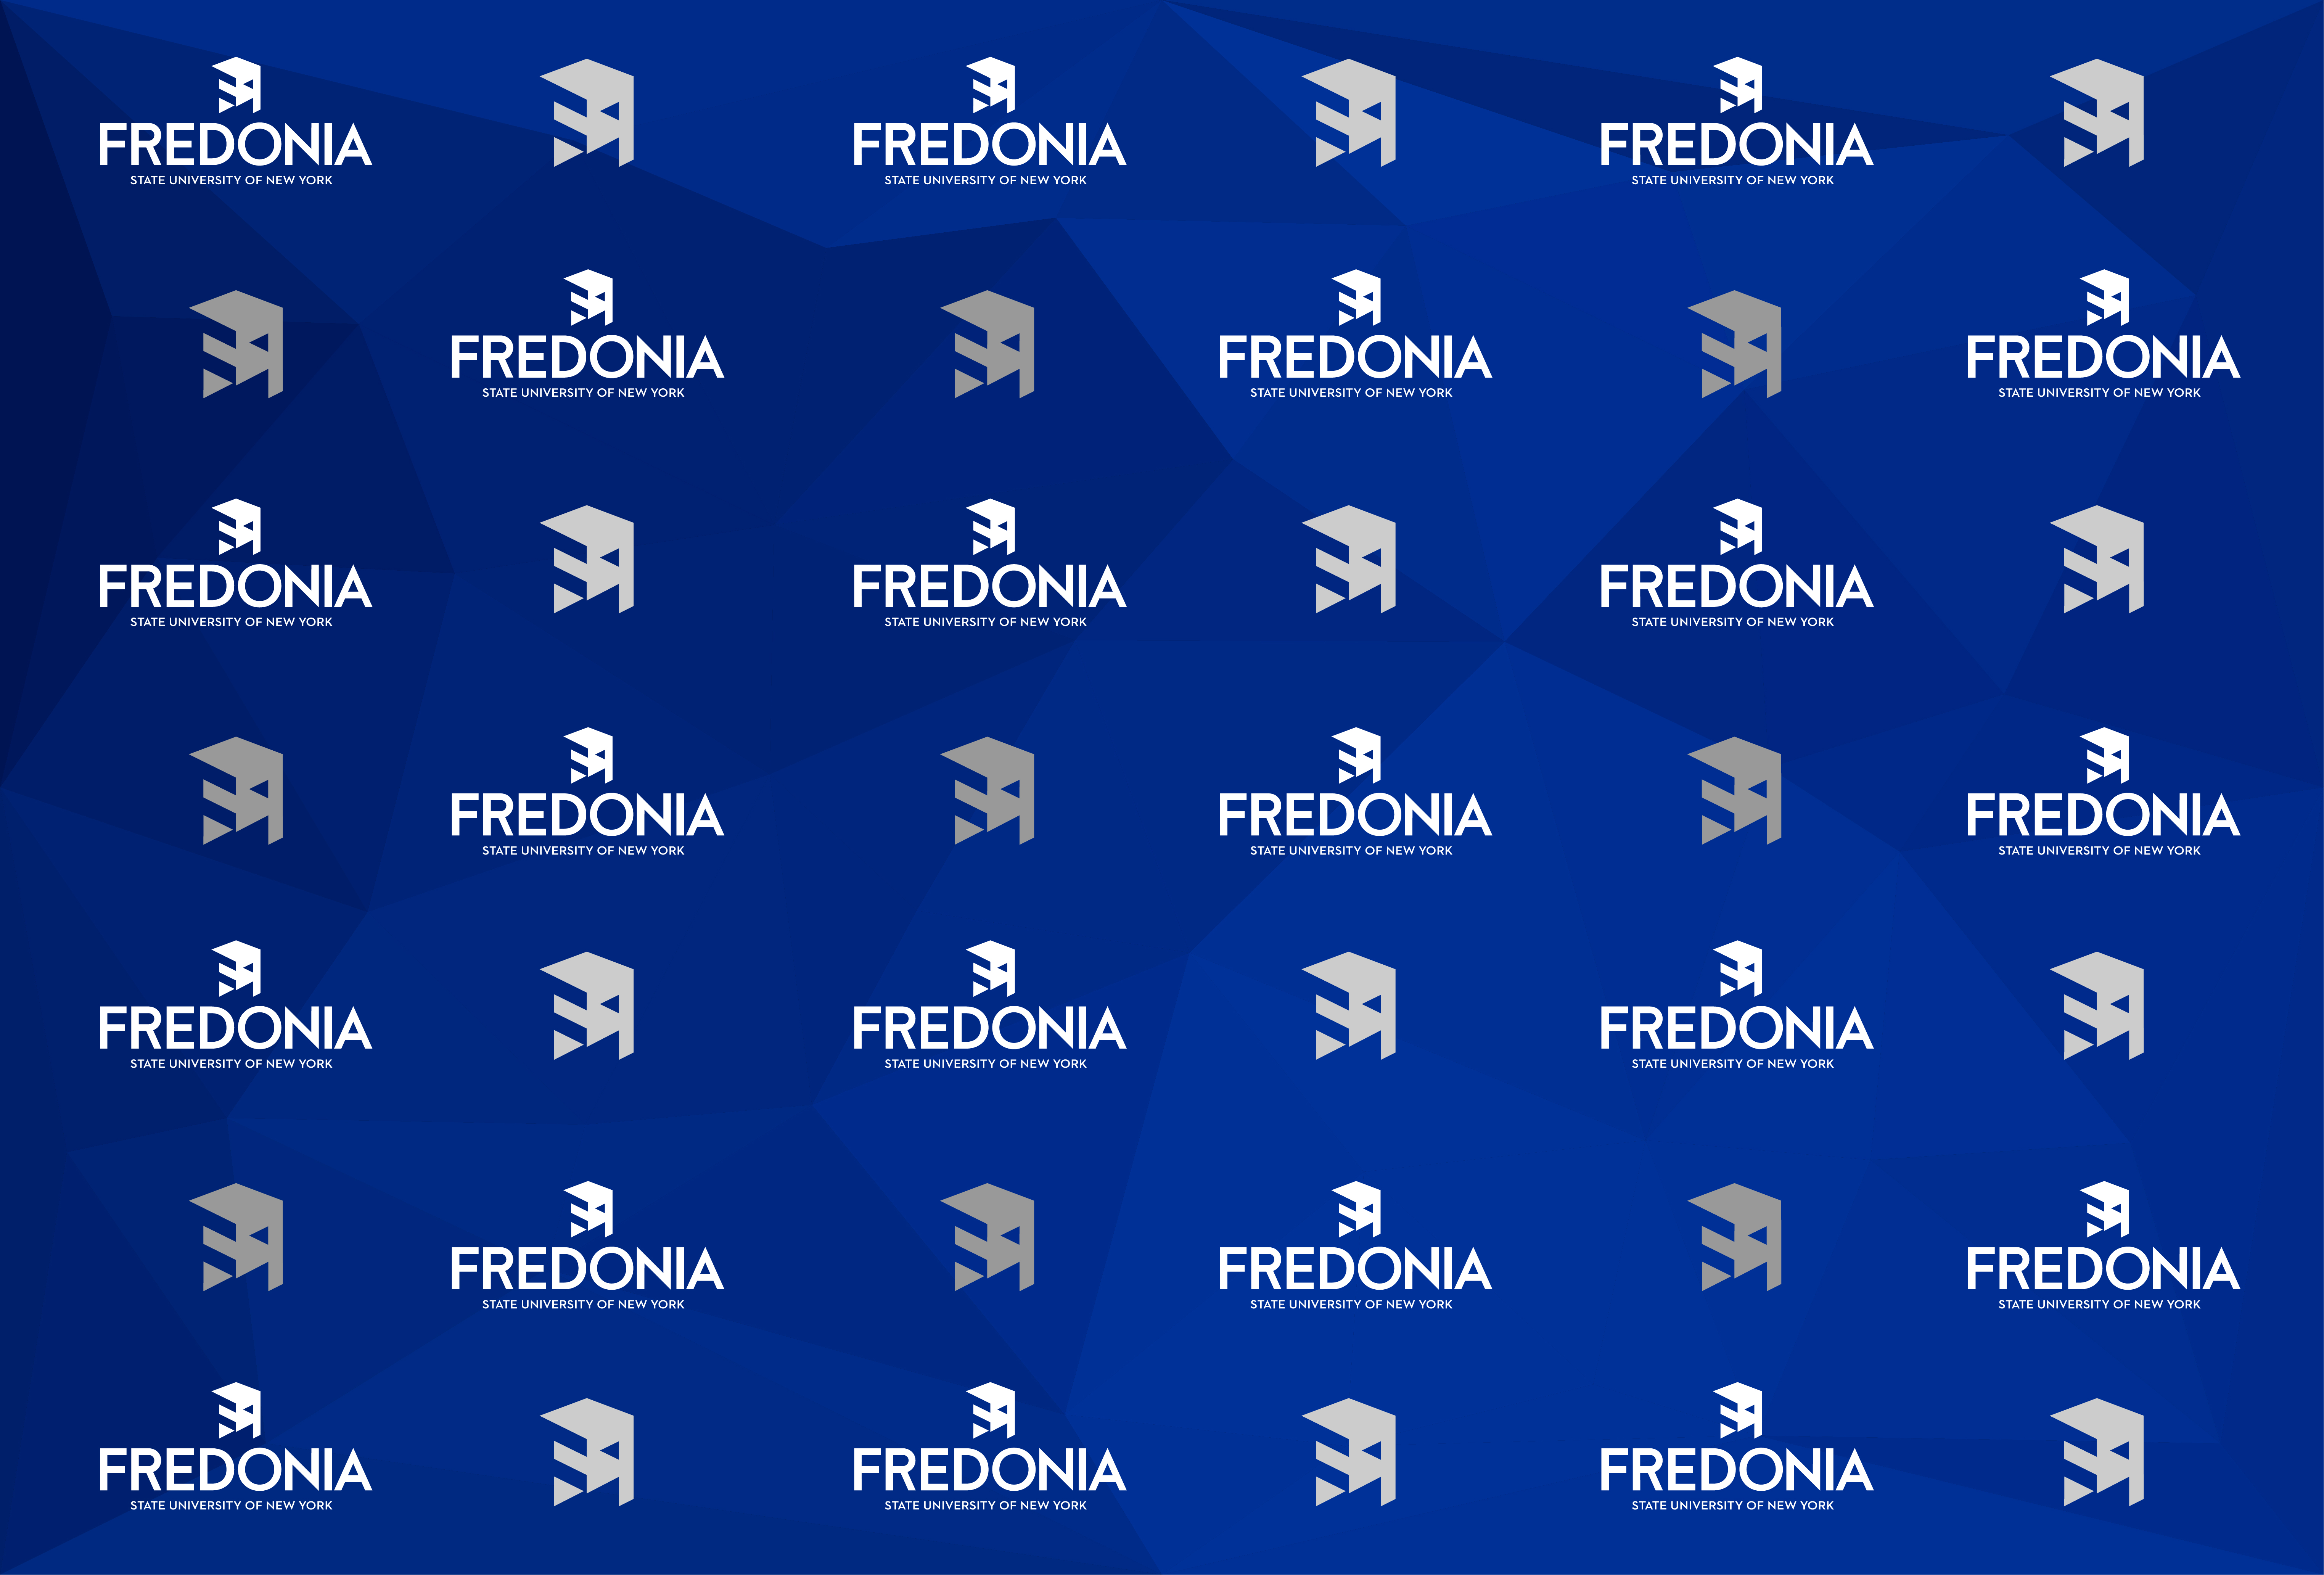 virtual background - Fredonia blue